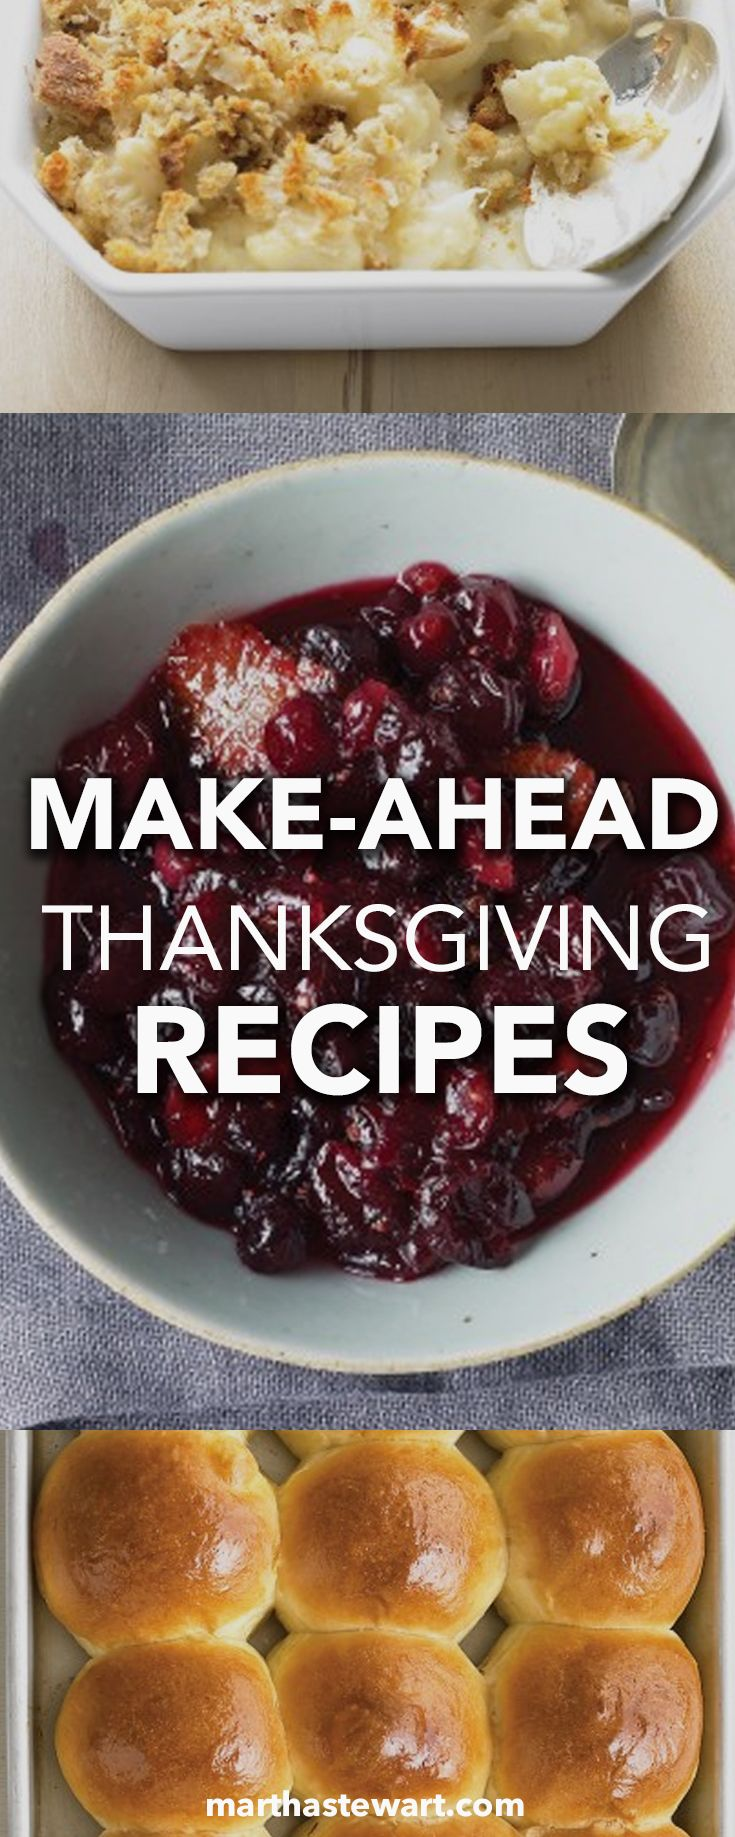 With multiple appetizers, an epic array of side dishes, and an assortment of pies to prepare -- not to mention the great big bird at the center of the table -- making Thanksgiving dinner can be overwhelming to even the most seasoned cooks. That's why we like to make as many dishes ahead of time as we possibly can. Here are our best make-ahead recipes for appetizers, side dishes, and desserts so you can have more time to enjoy your guests on Thanksgiving Day.